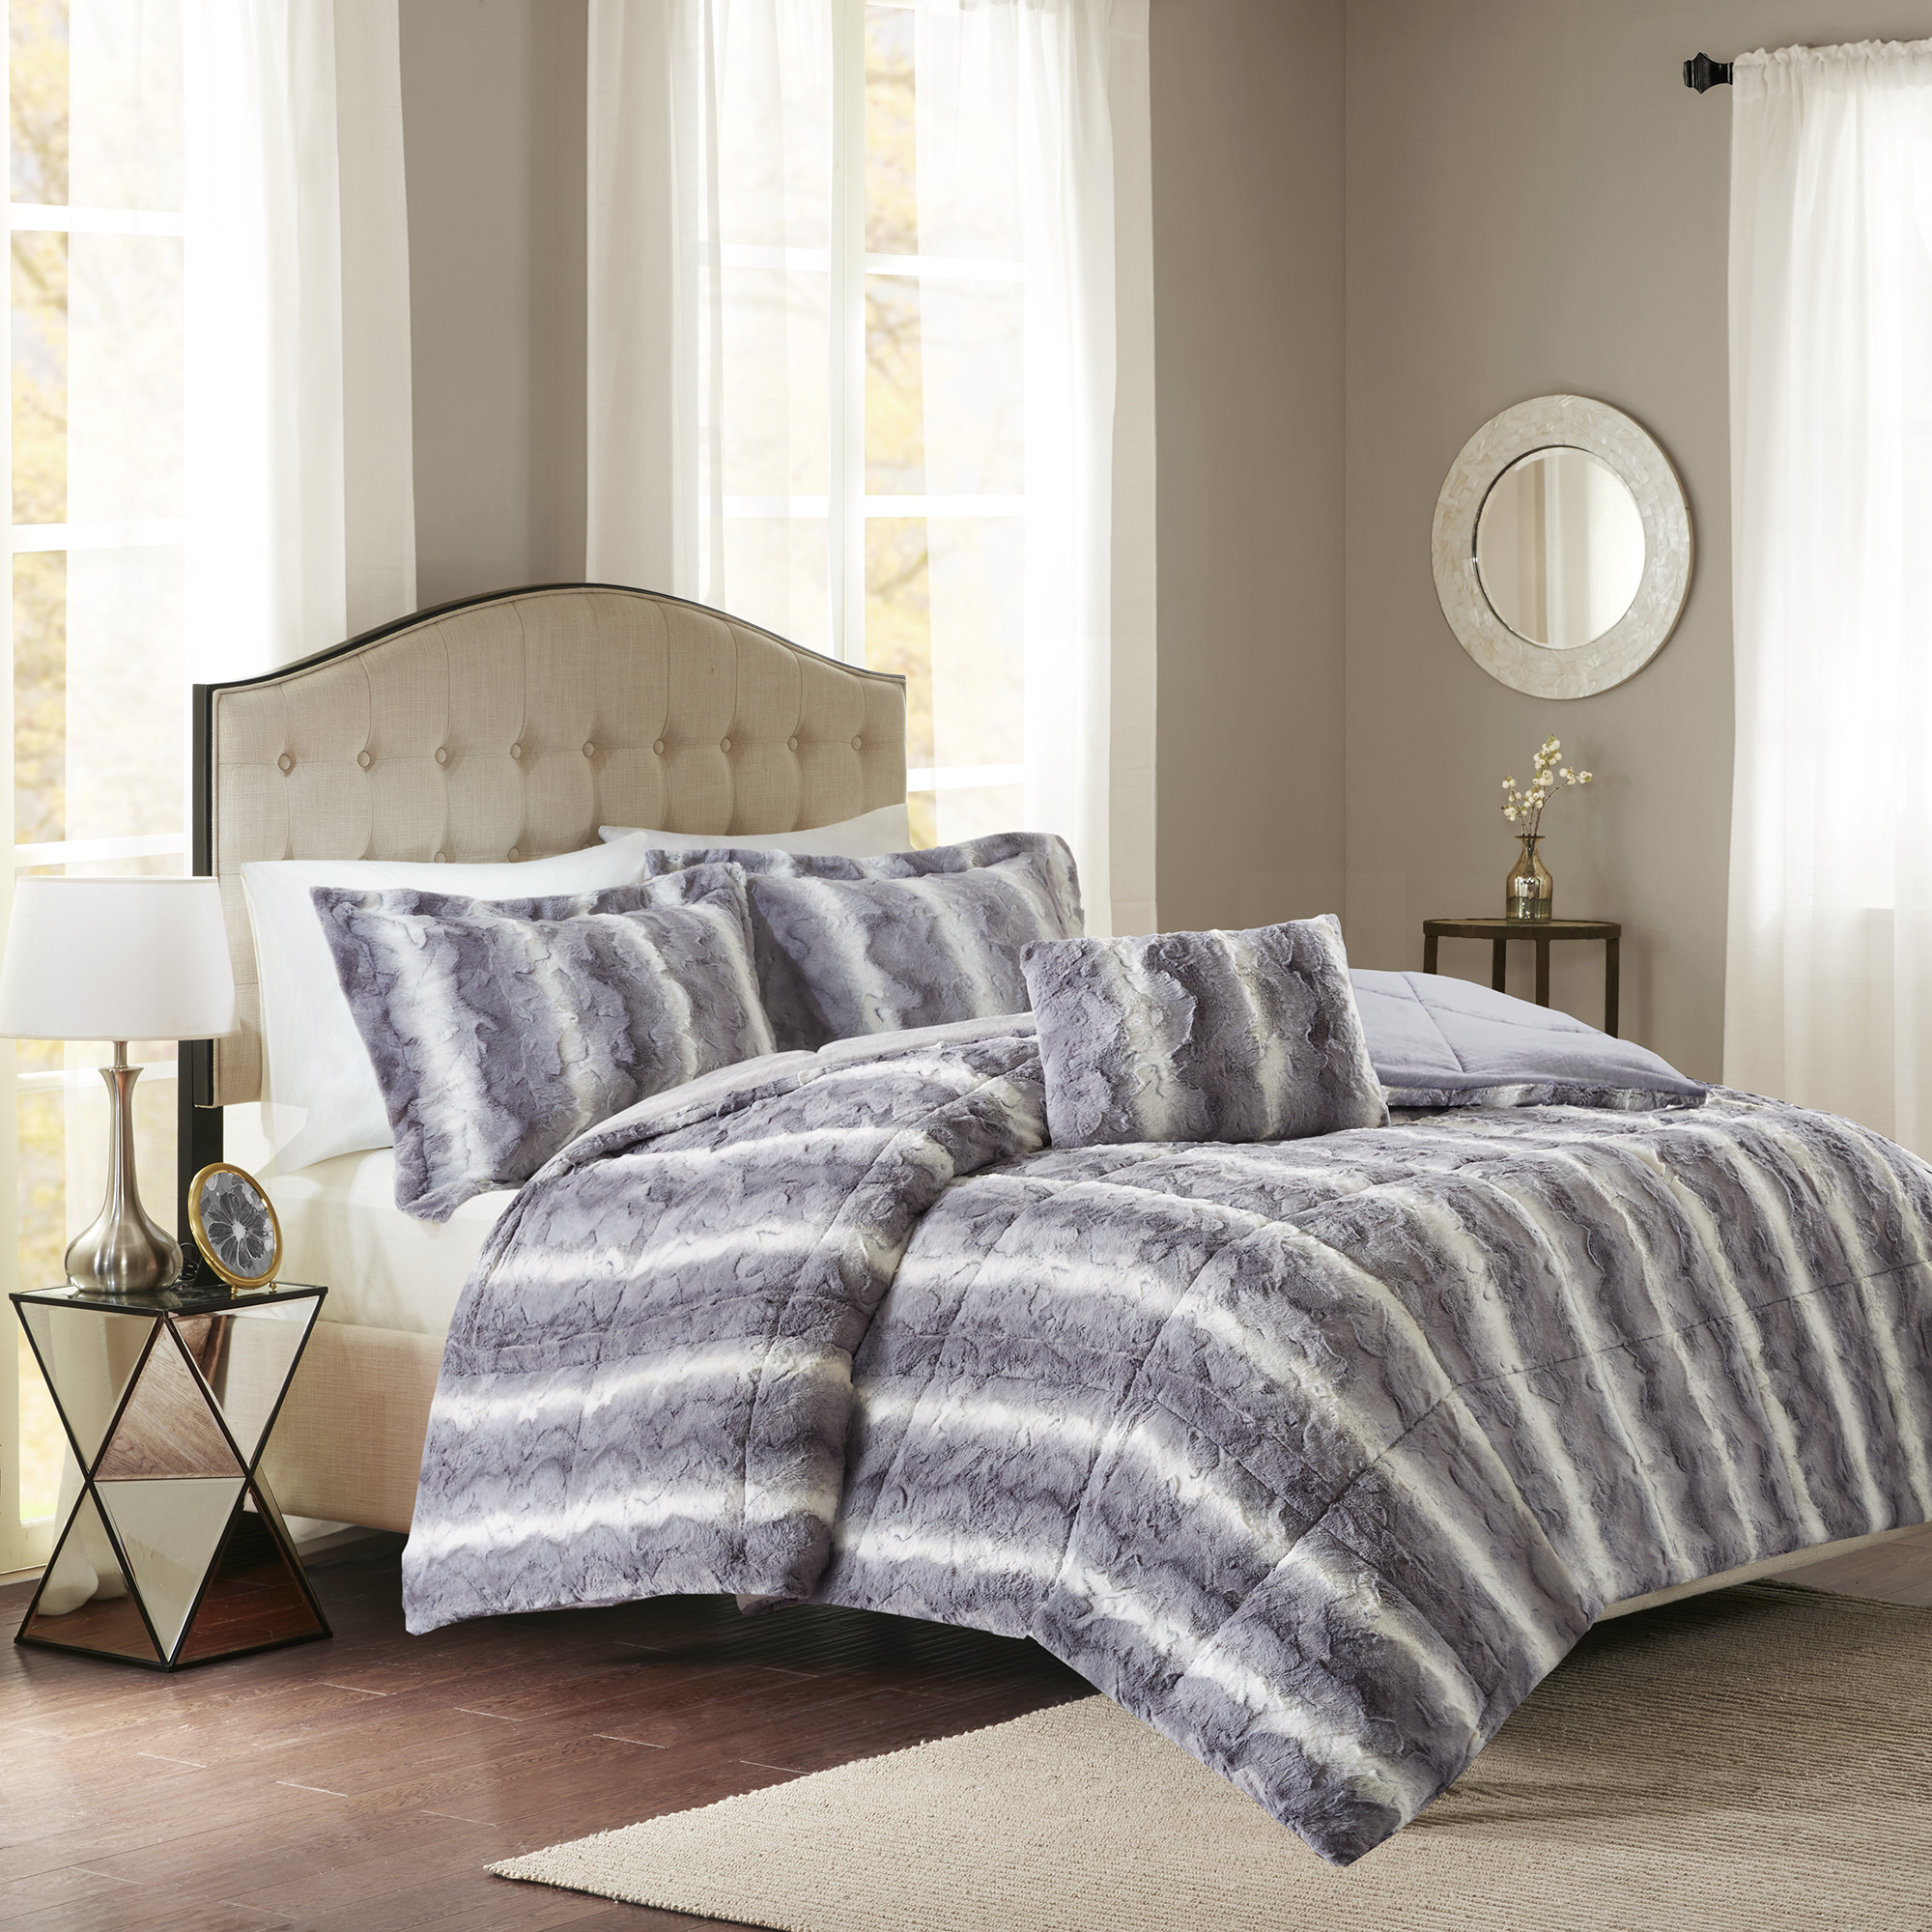 Home Essence Marselle Faux Fur Down Alternative Comforter Set